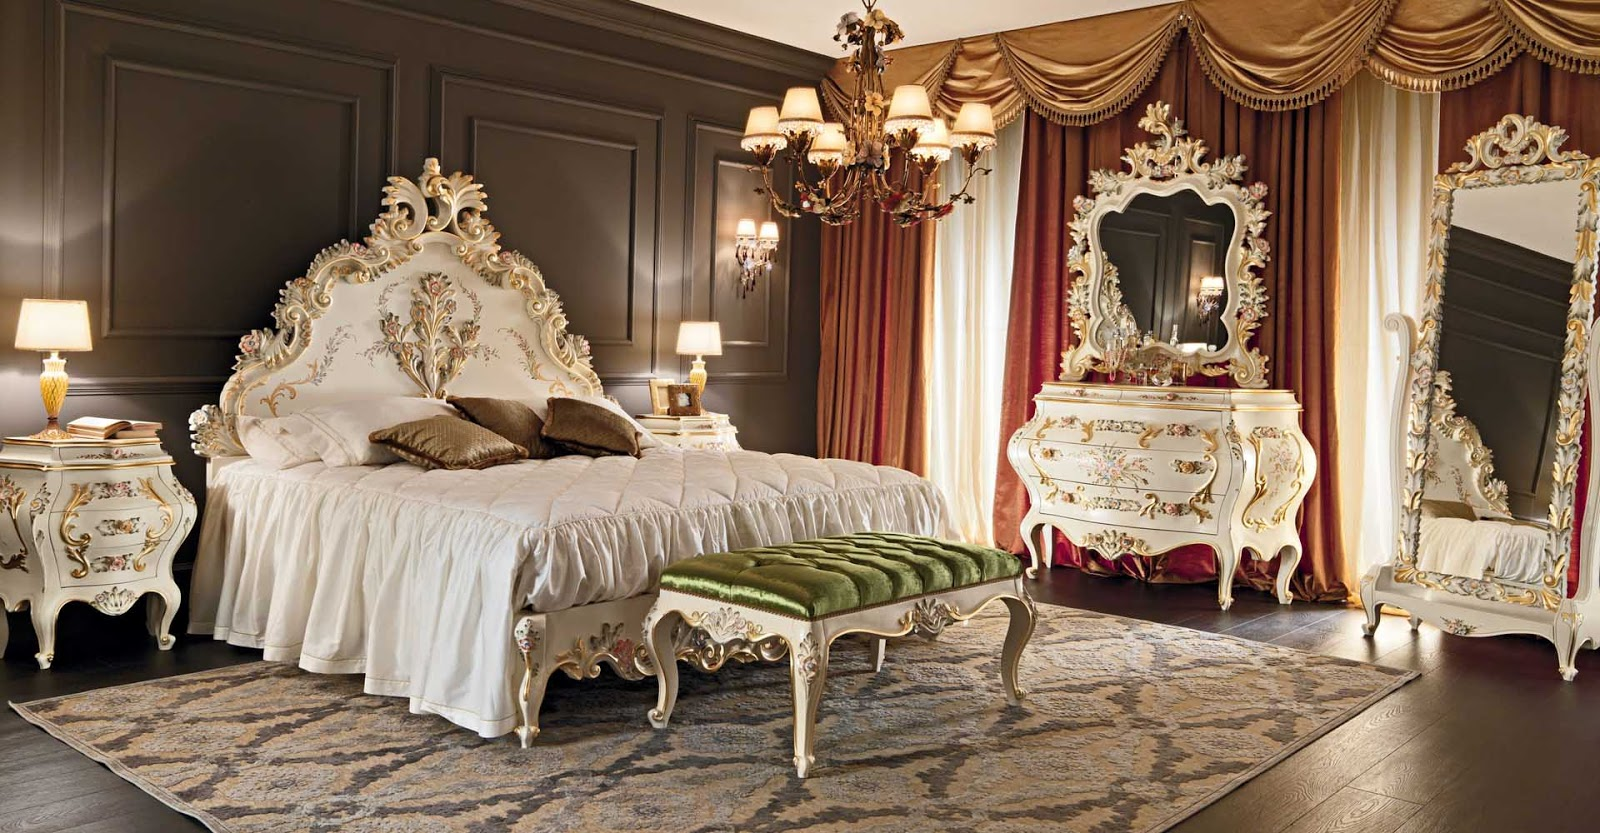 Elegant Bedroom Furniture ~ Amazing luxury bedroom furniture ideas home design